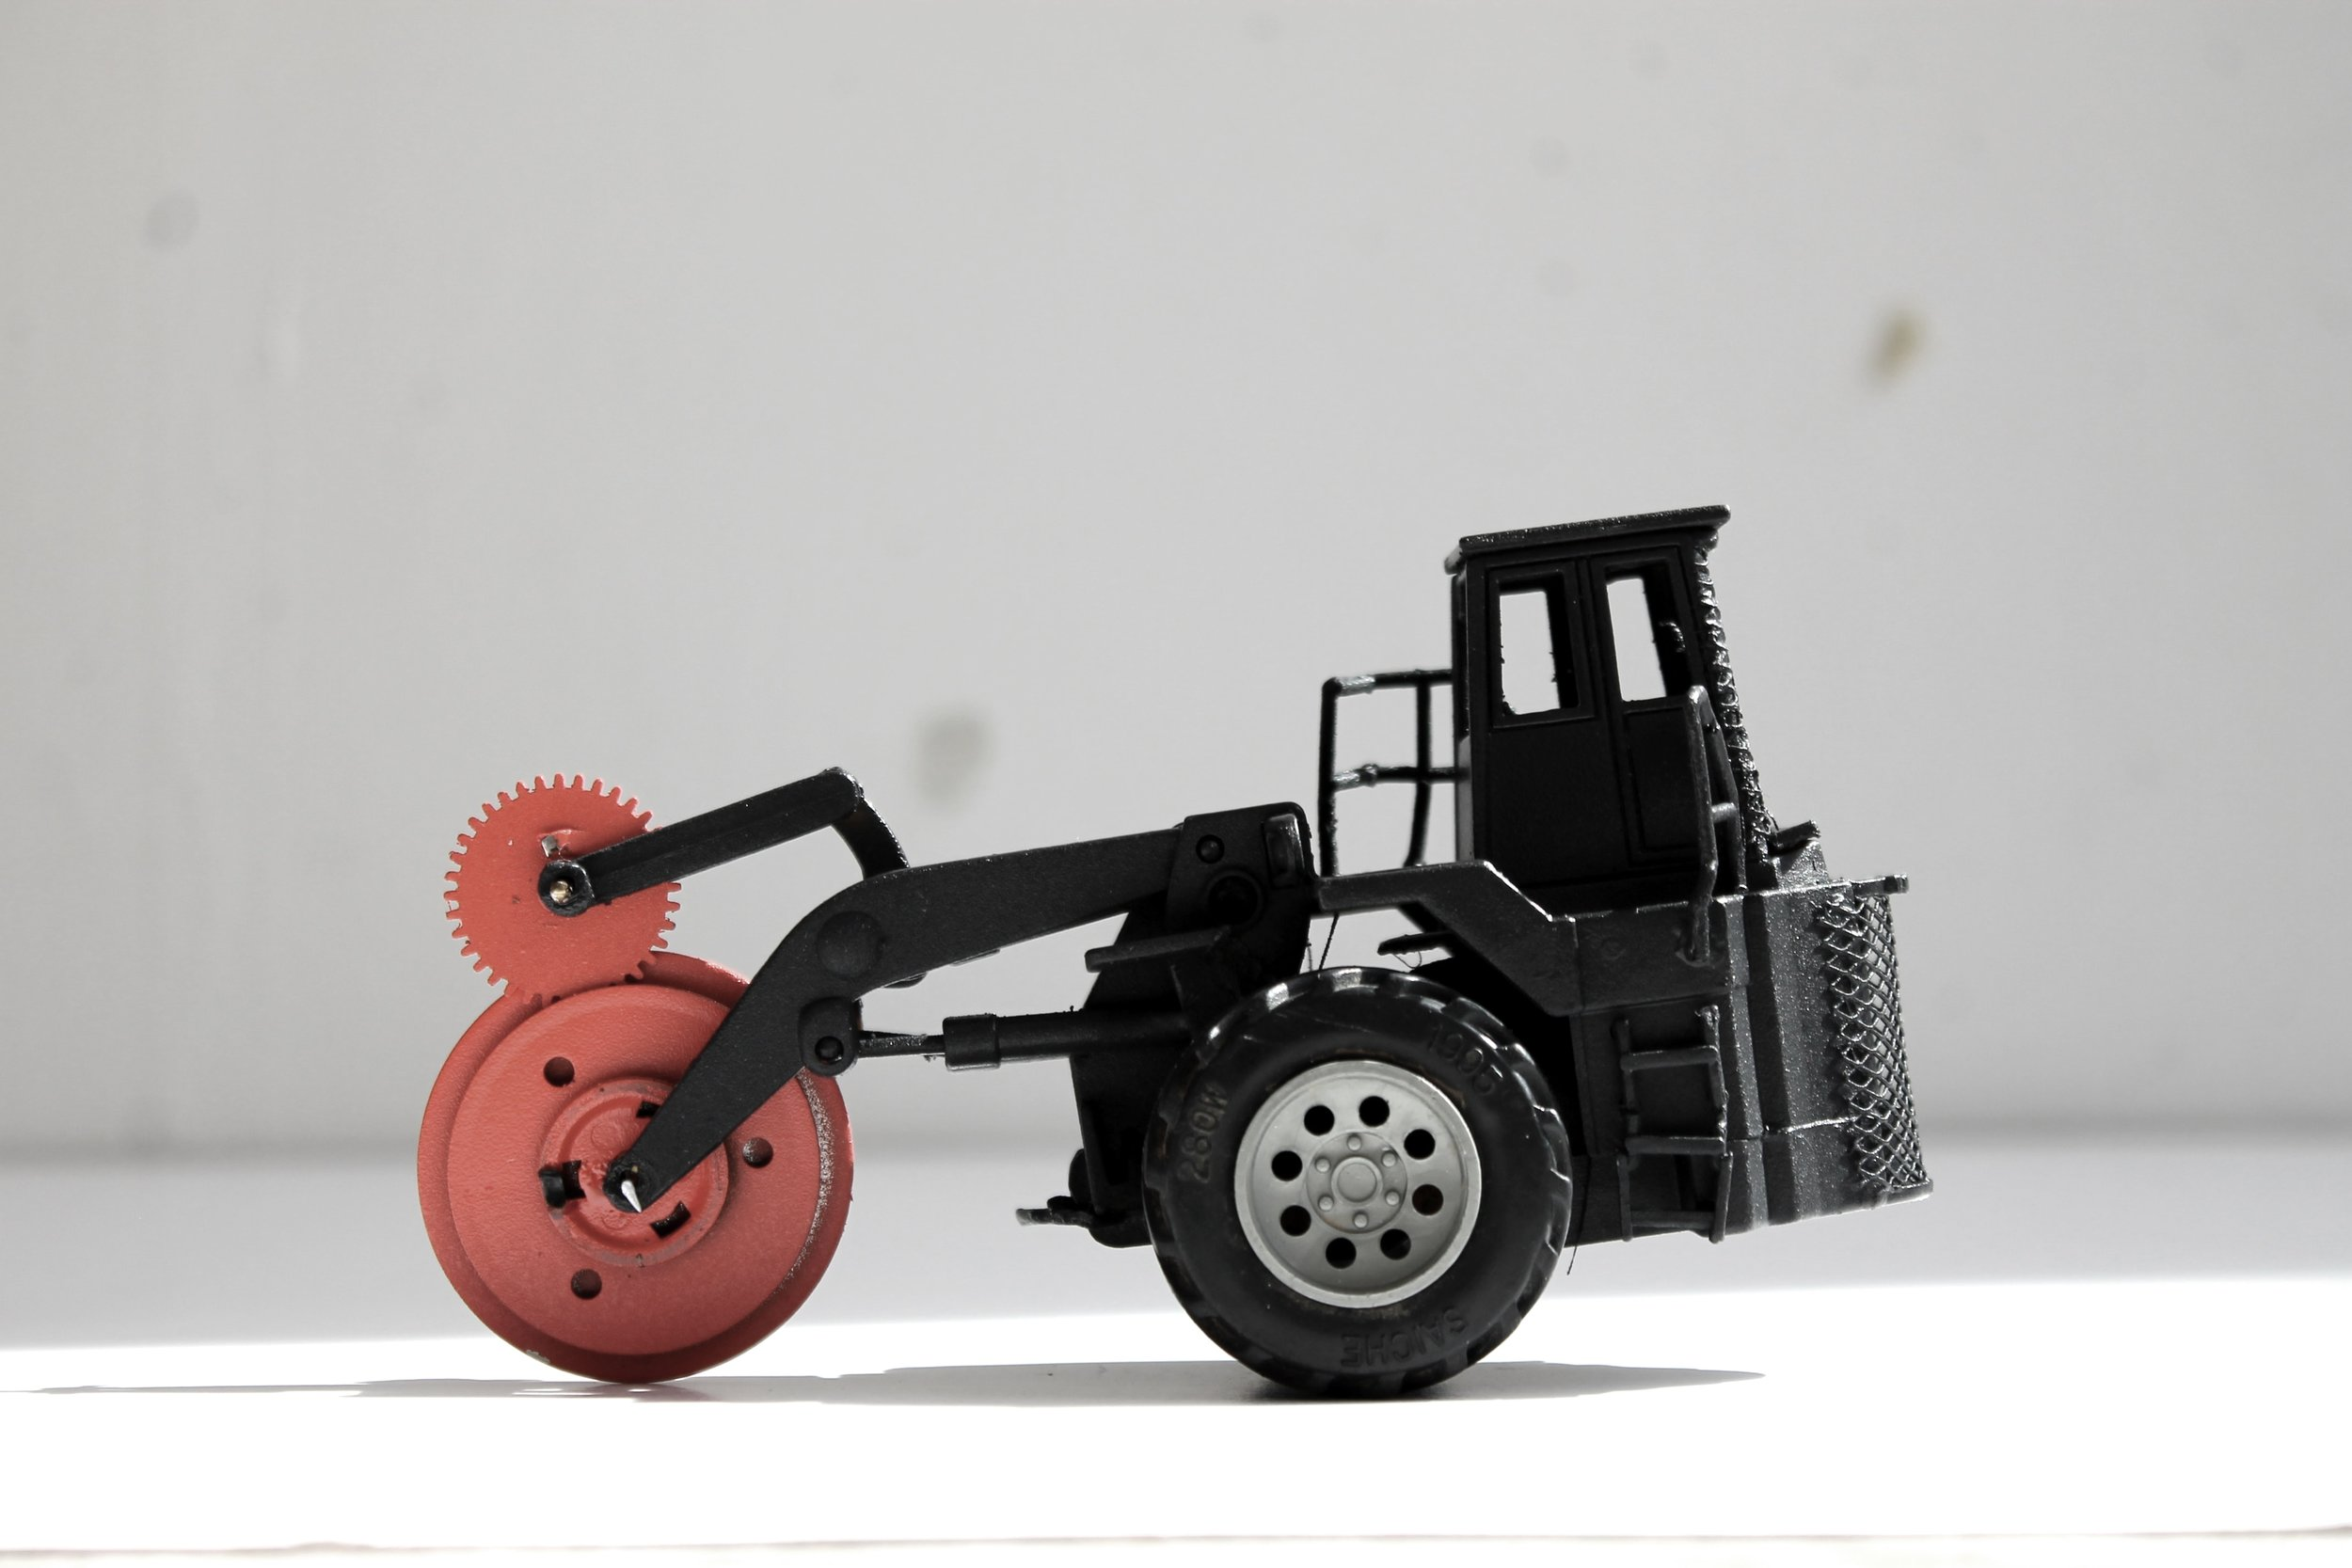 tractor-elevcation-2-min.jpg